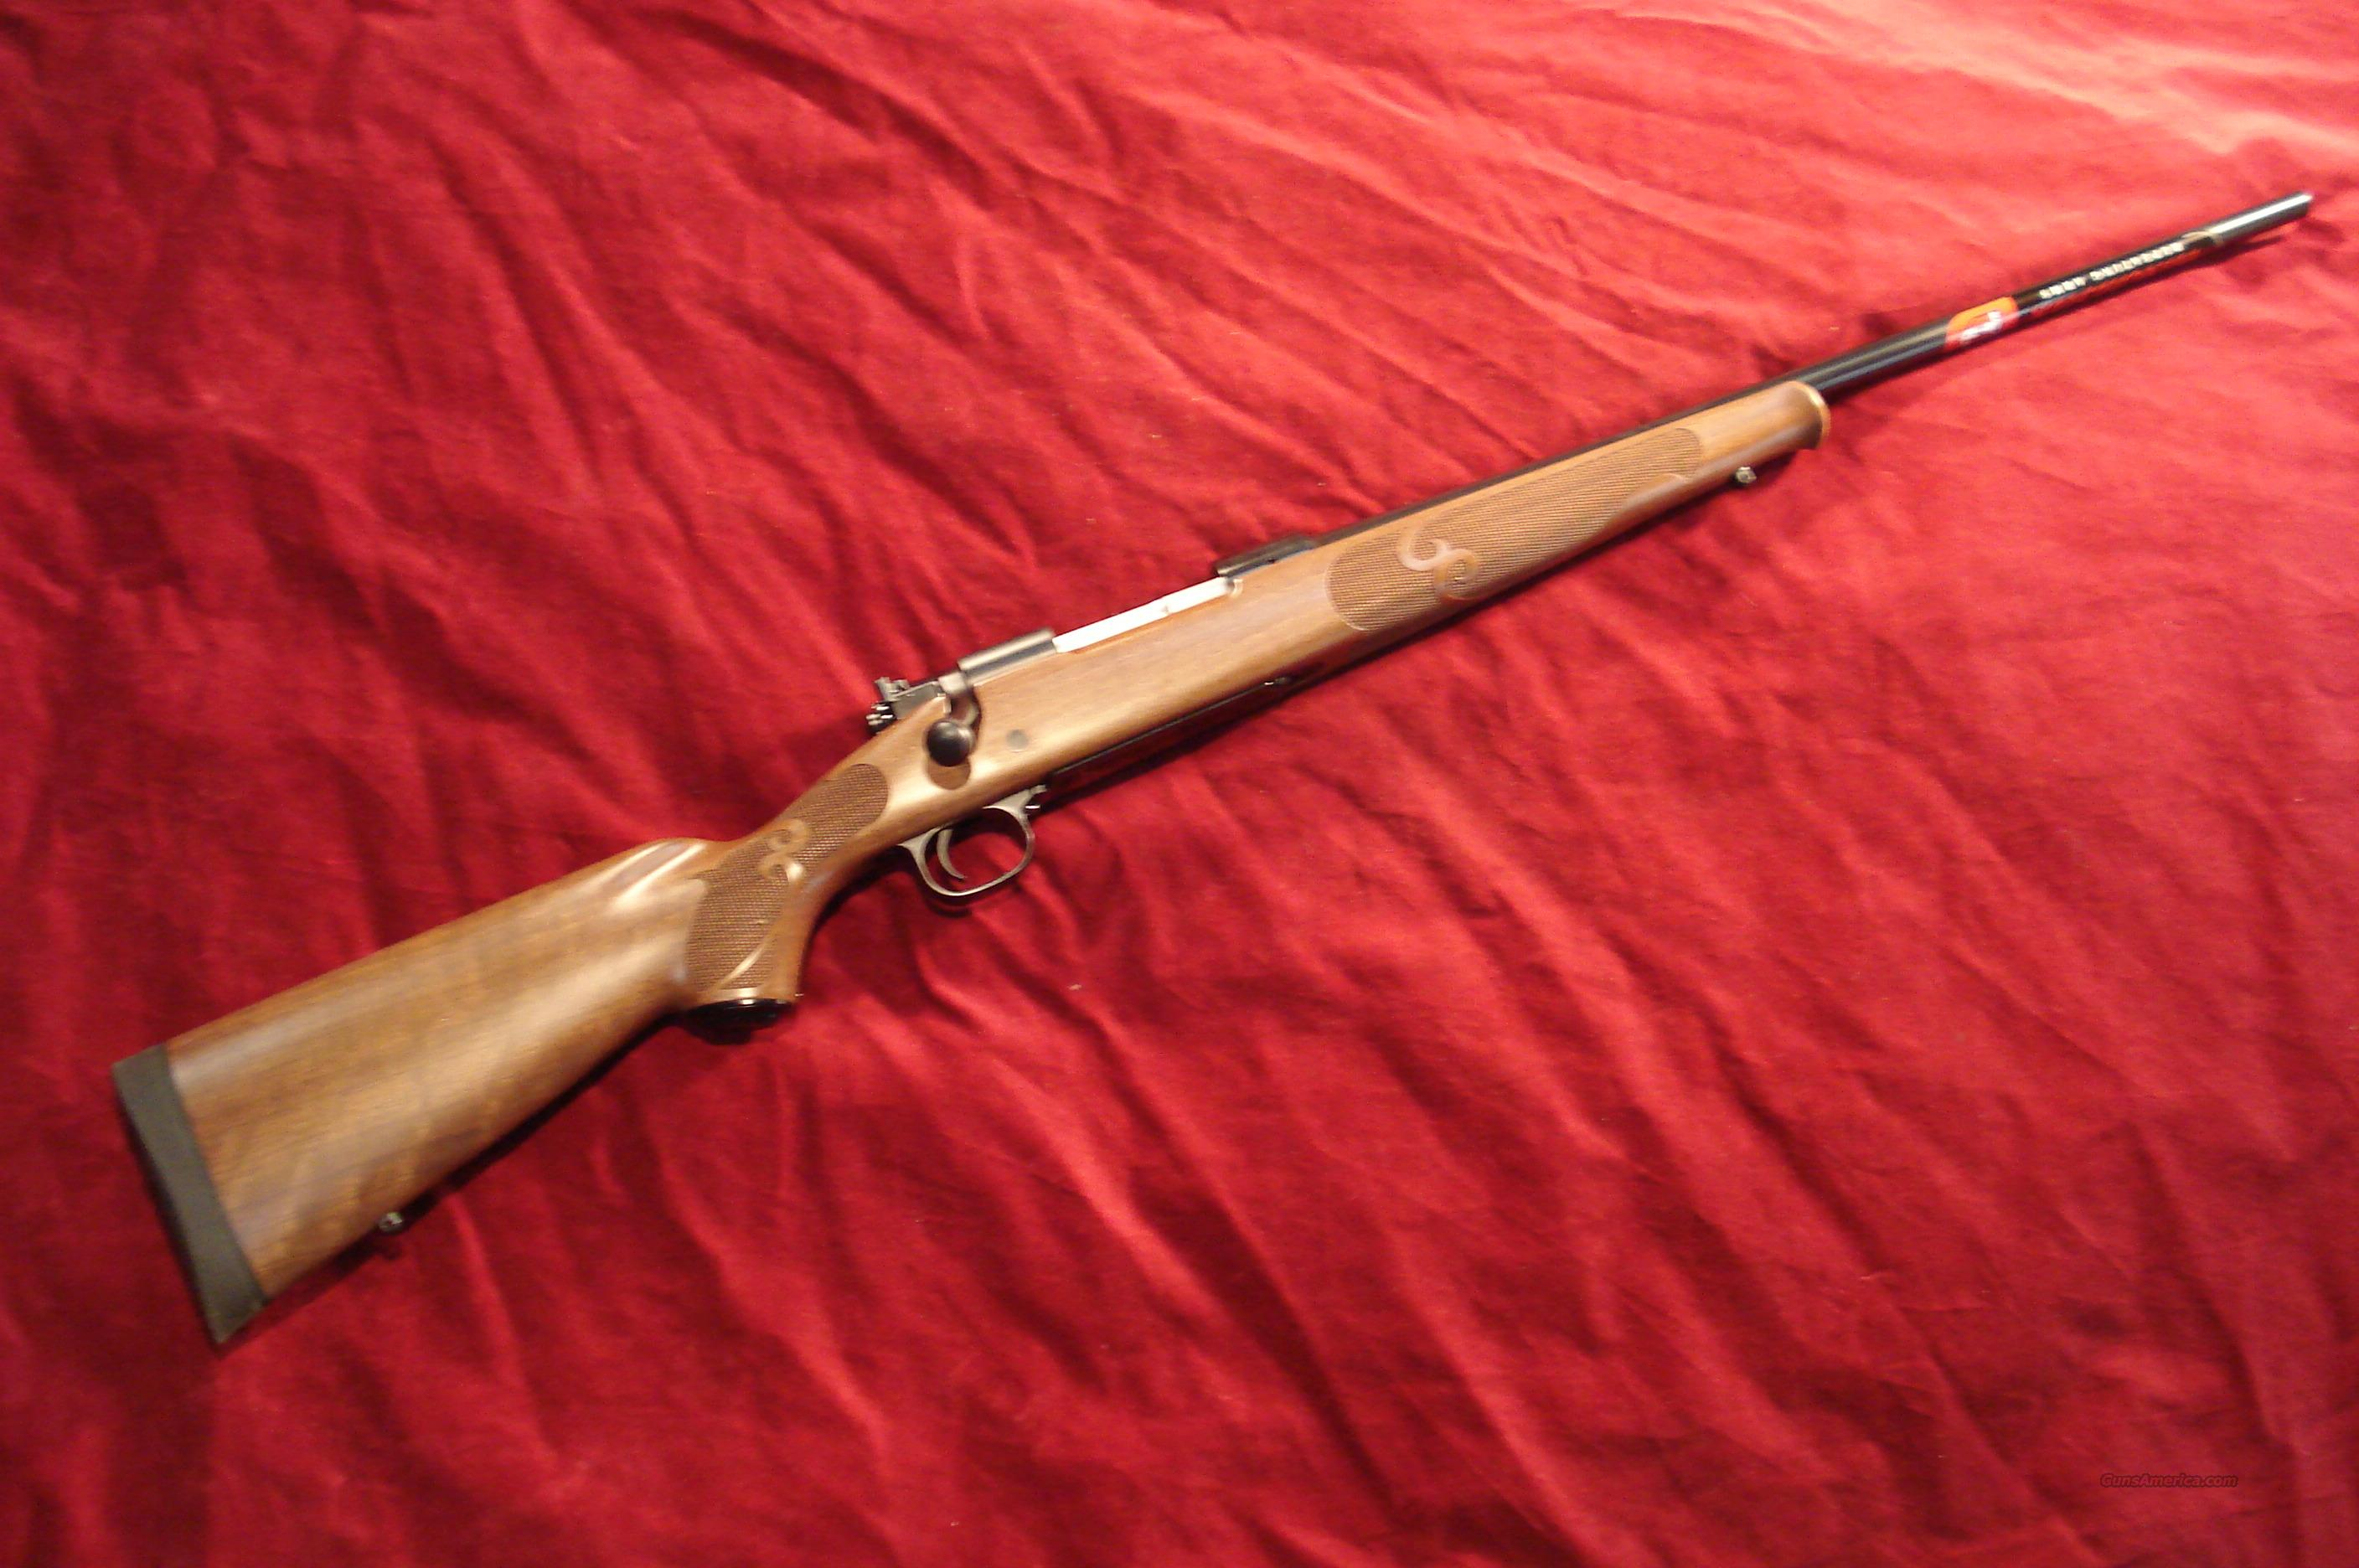 WINCHESTER 70 FEATHERWEIGHT DELUXE .270 CAL. NEW   Guns > Rifles > Winchester Rifles - Modern Bolt/Auto/Single > Model 70 > Post-64